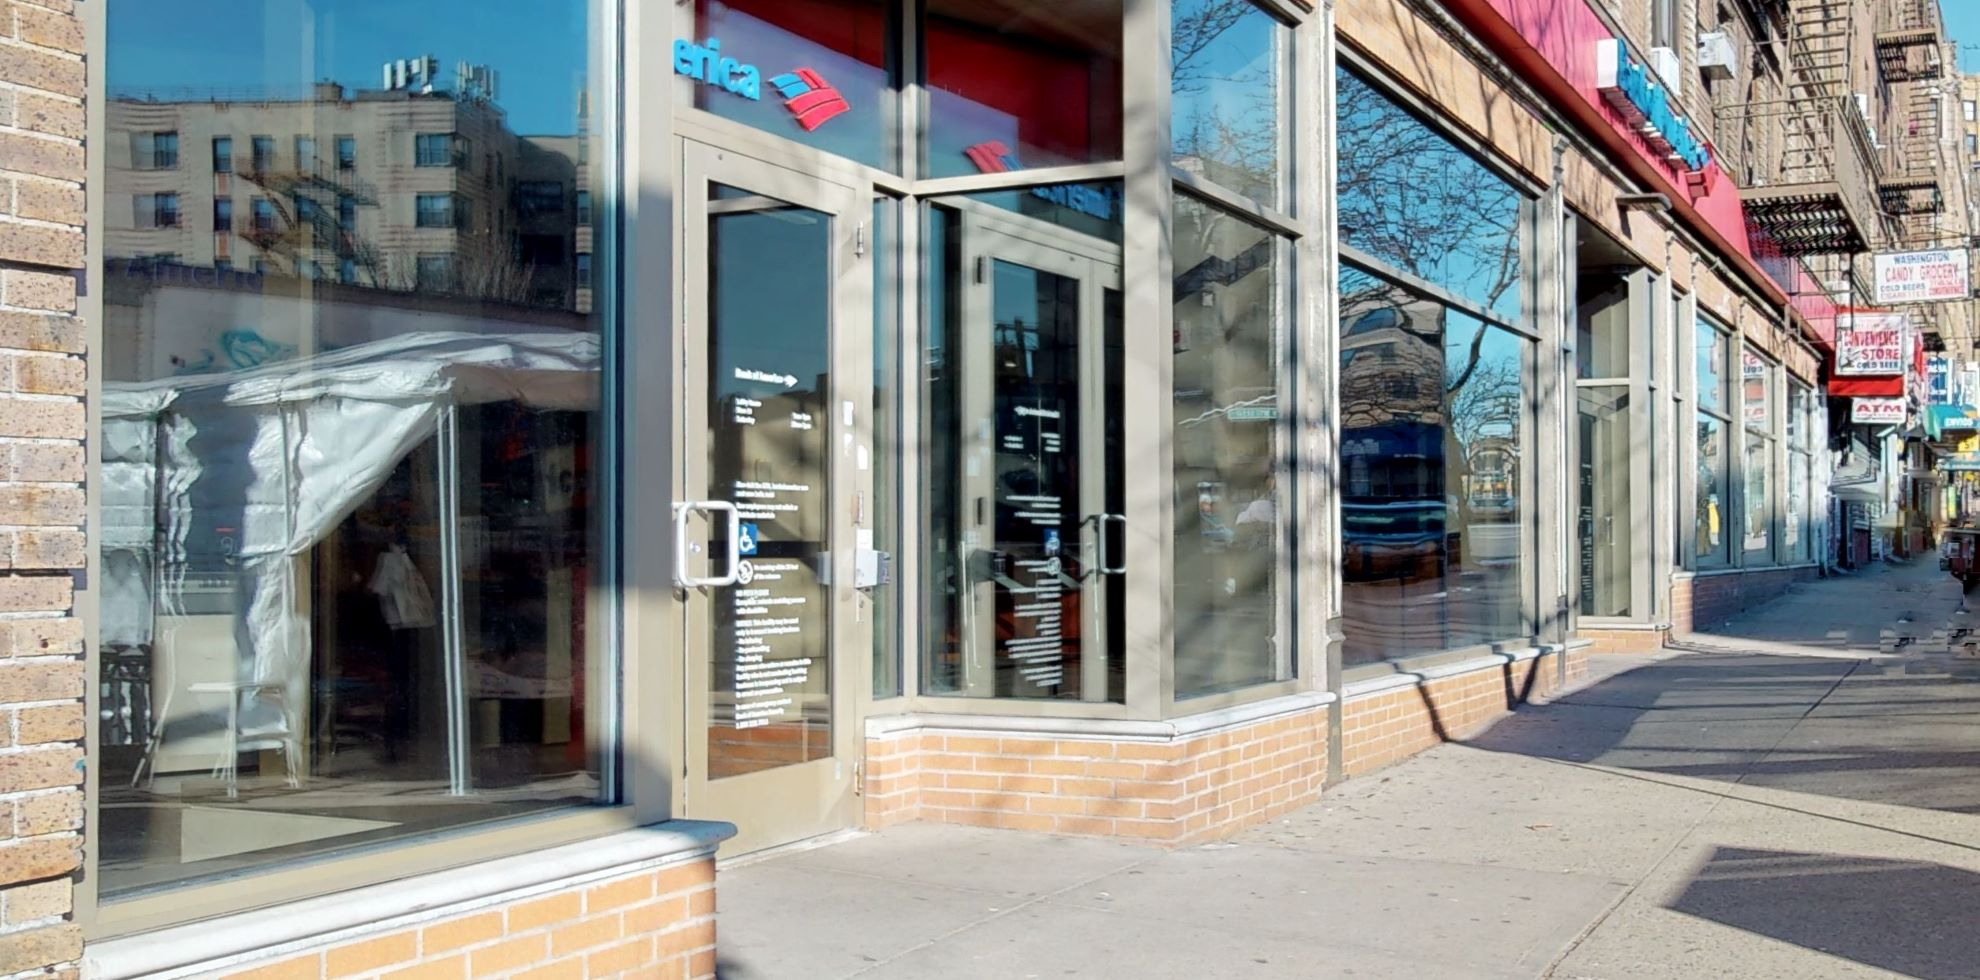 Bank of America financial center with walk-up ATM | 4061 Broadway, New York, NY 10032